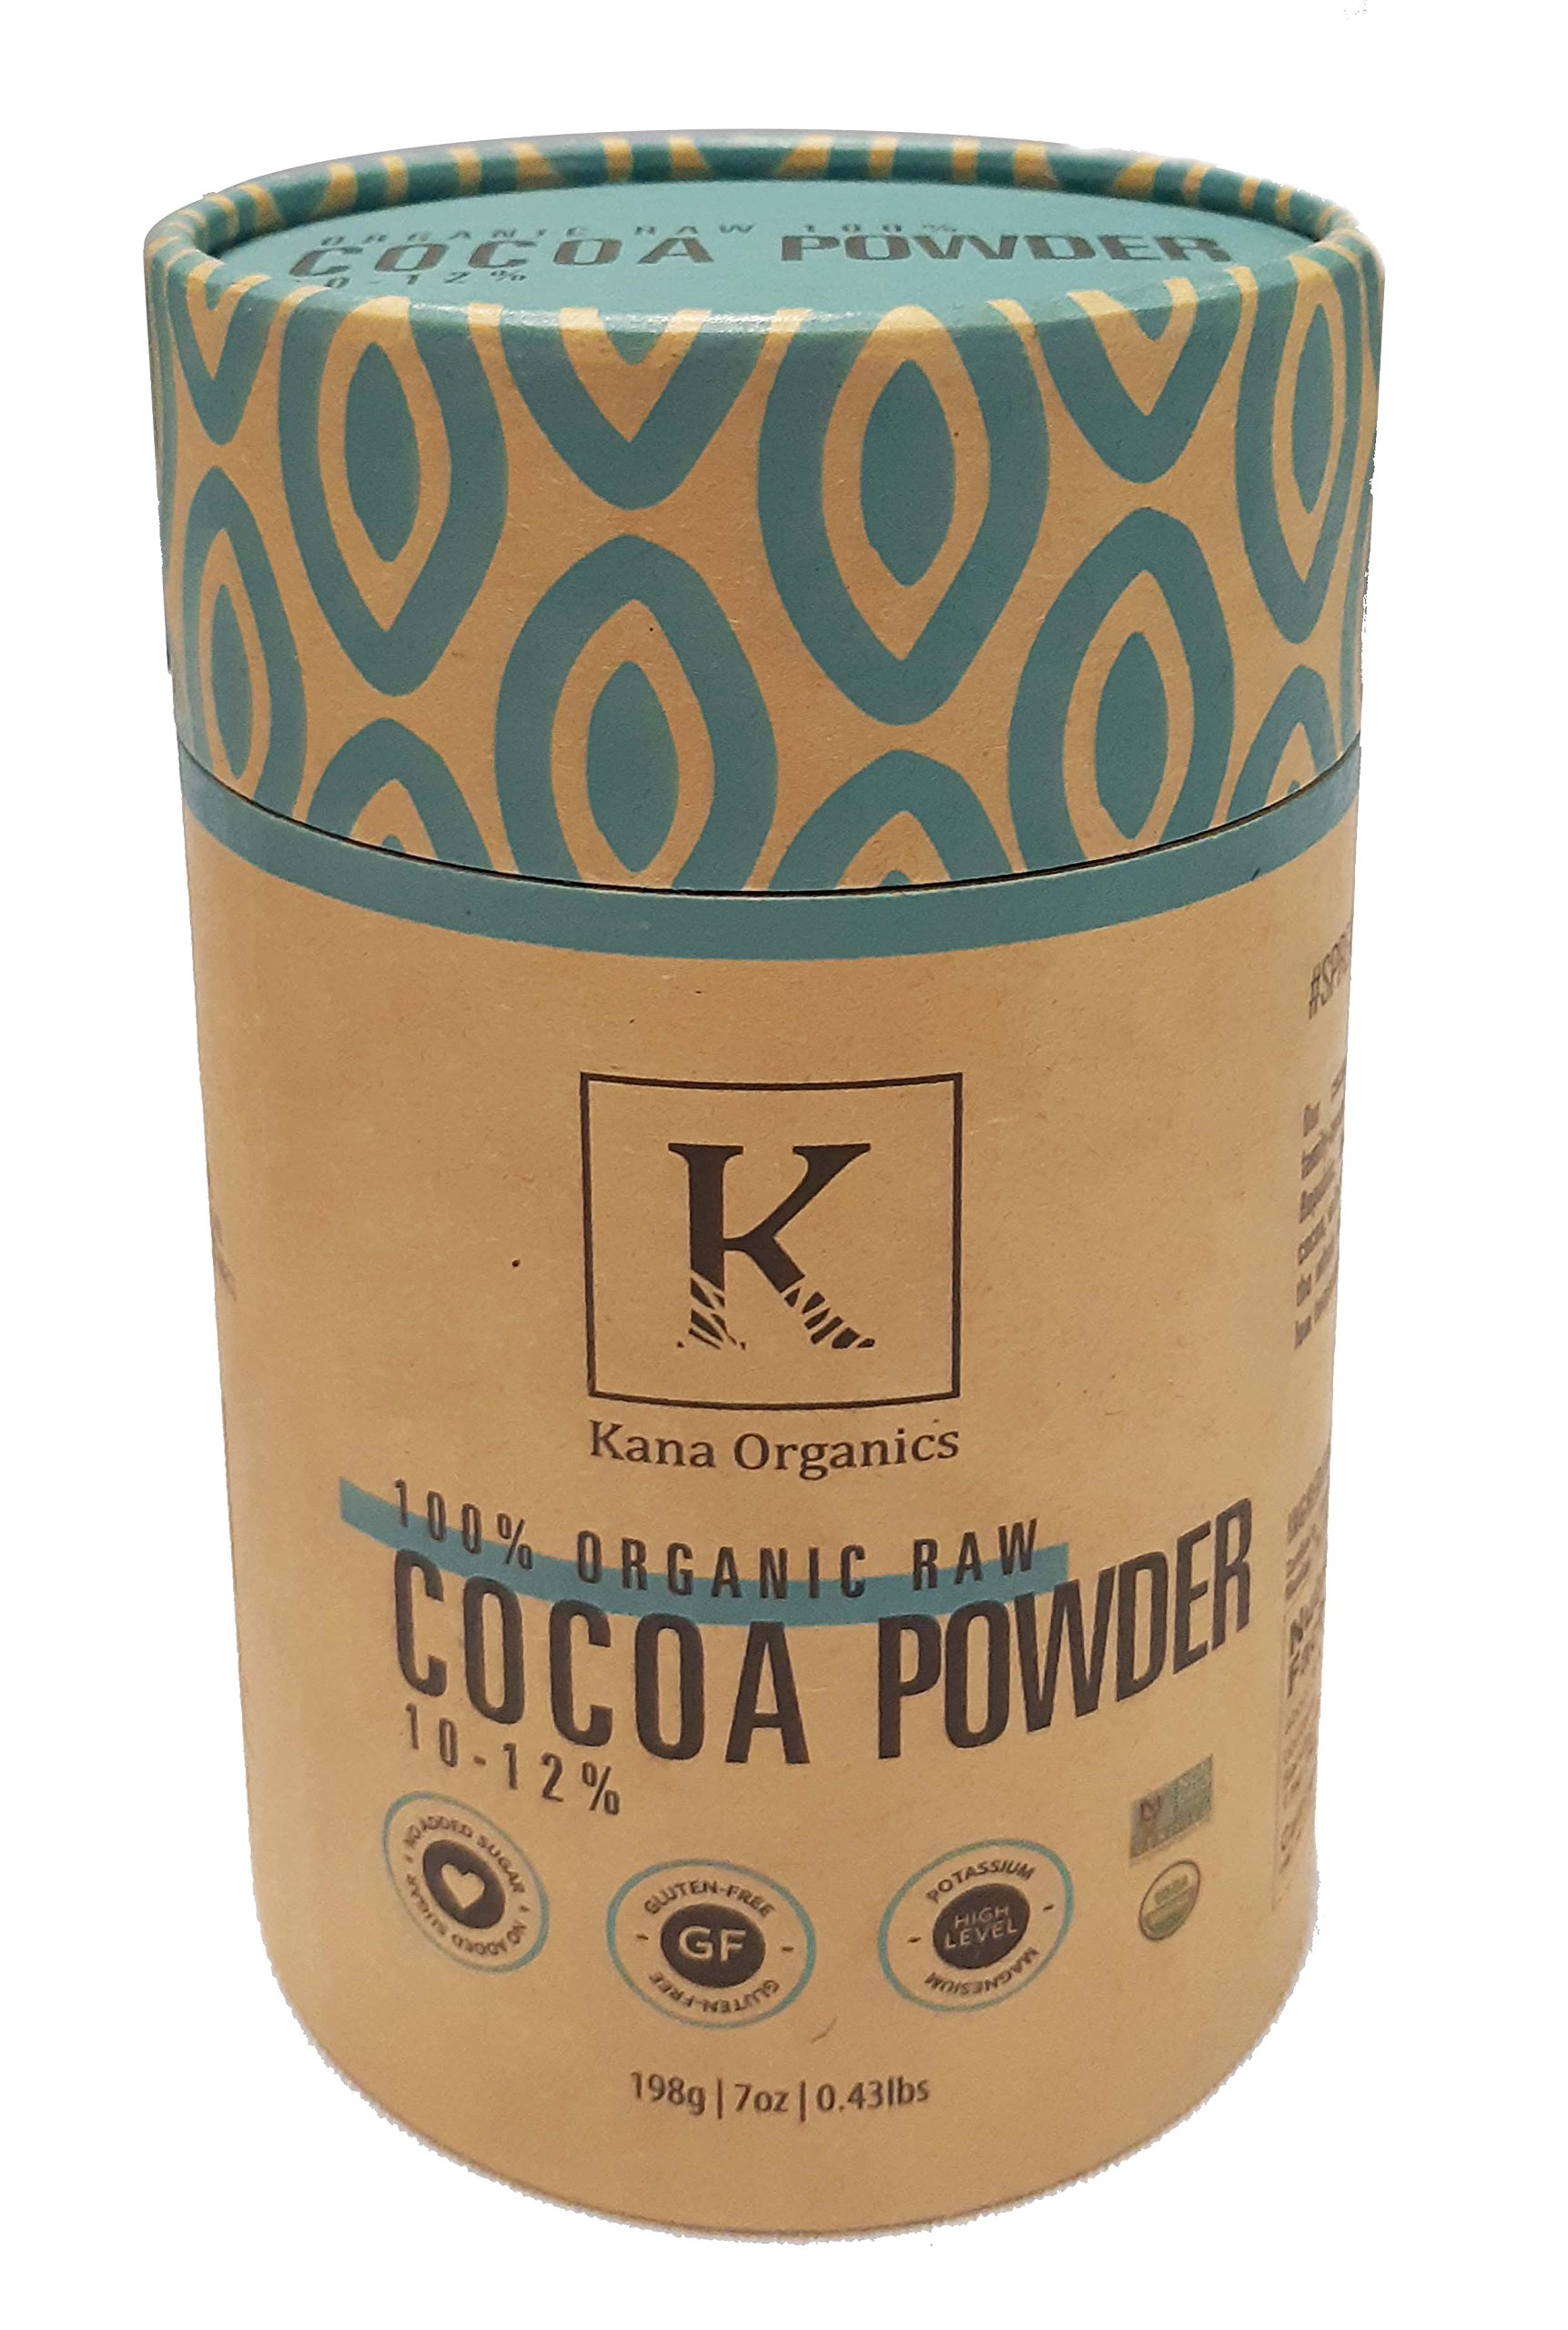 Healthy Organic Cocoa Powder - Gluten free/Vegan friendly by Kana Organics